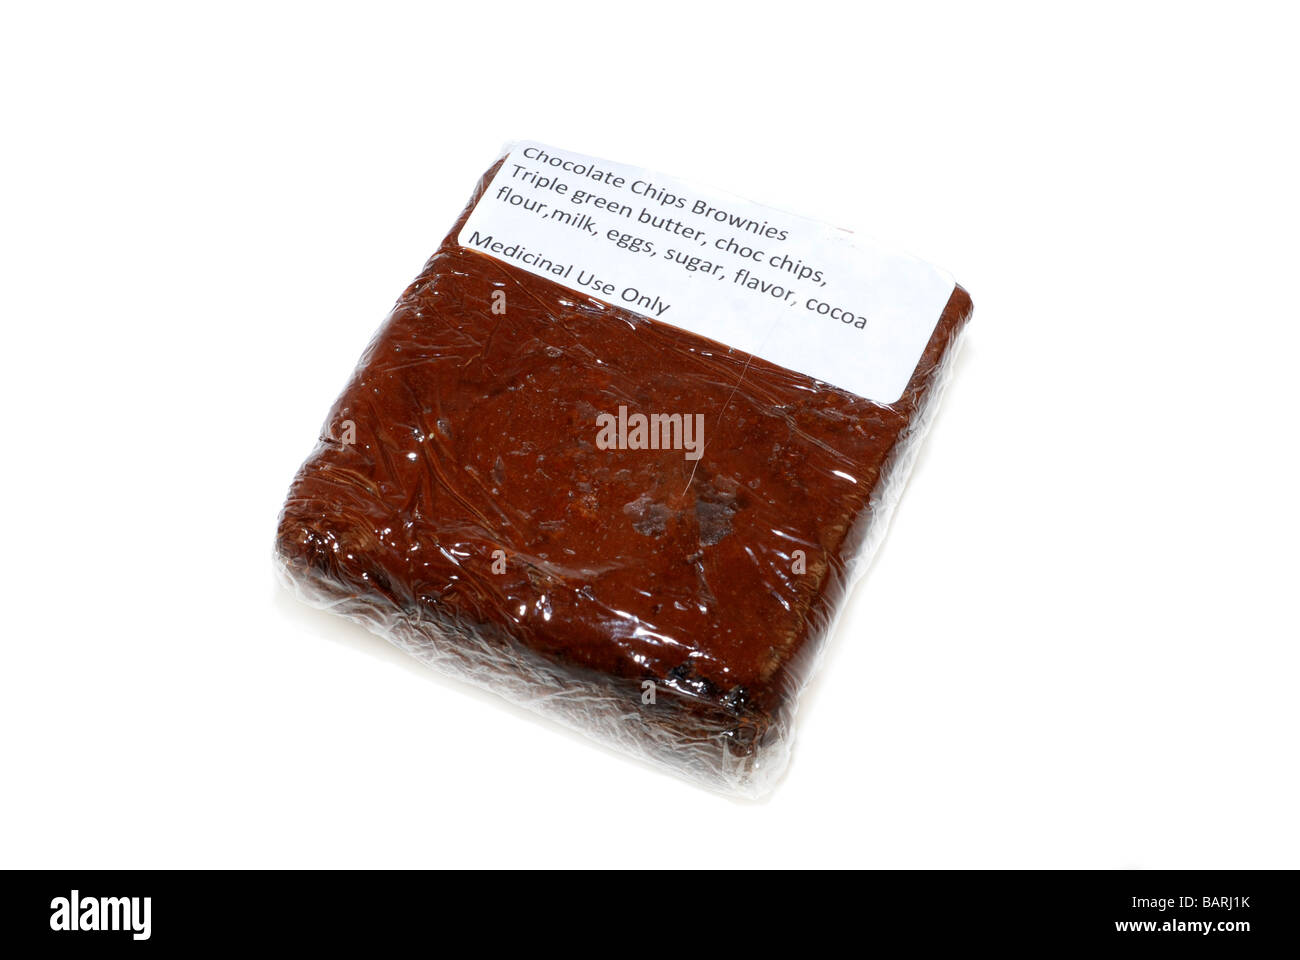 Brownie with triple green butter a medical cannabis edibles - Stock Image